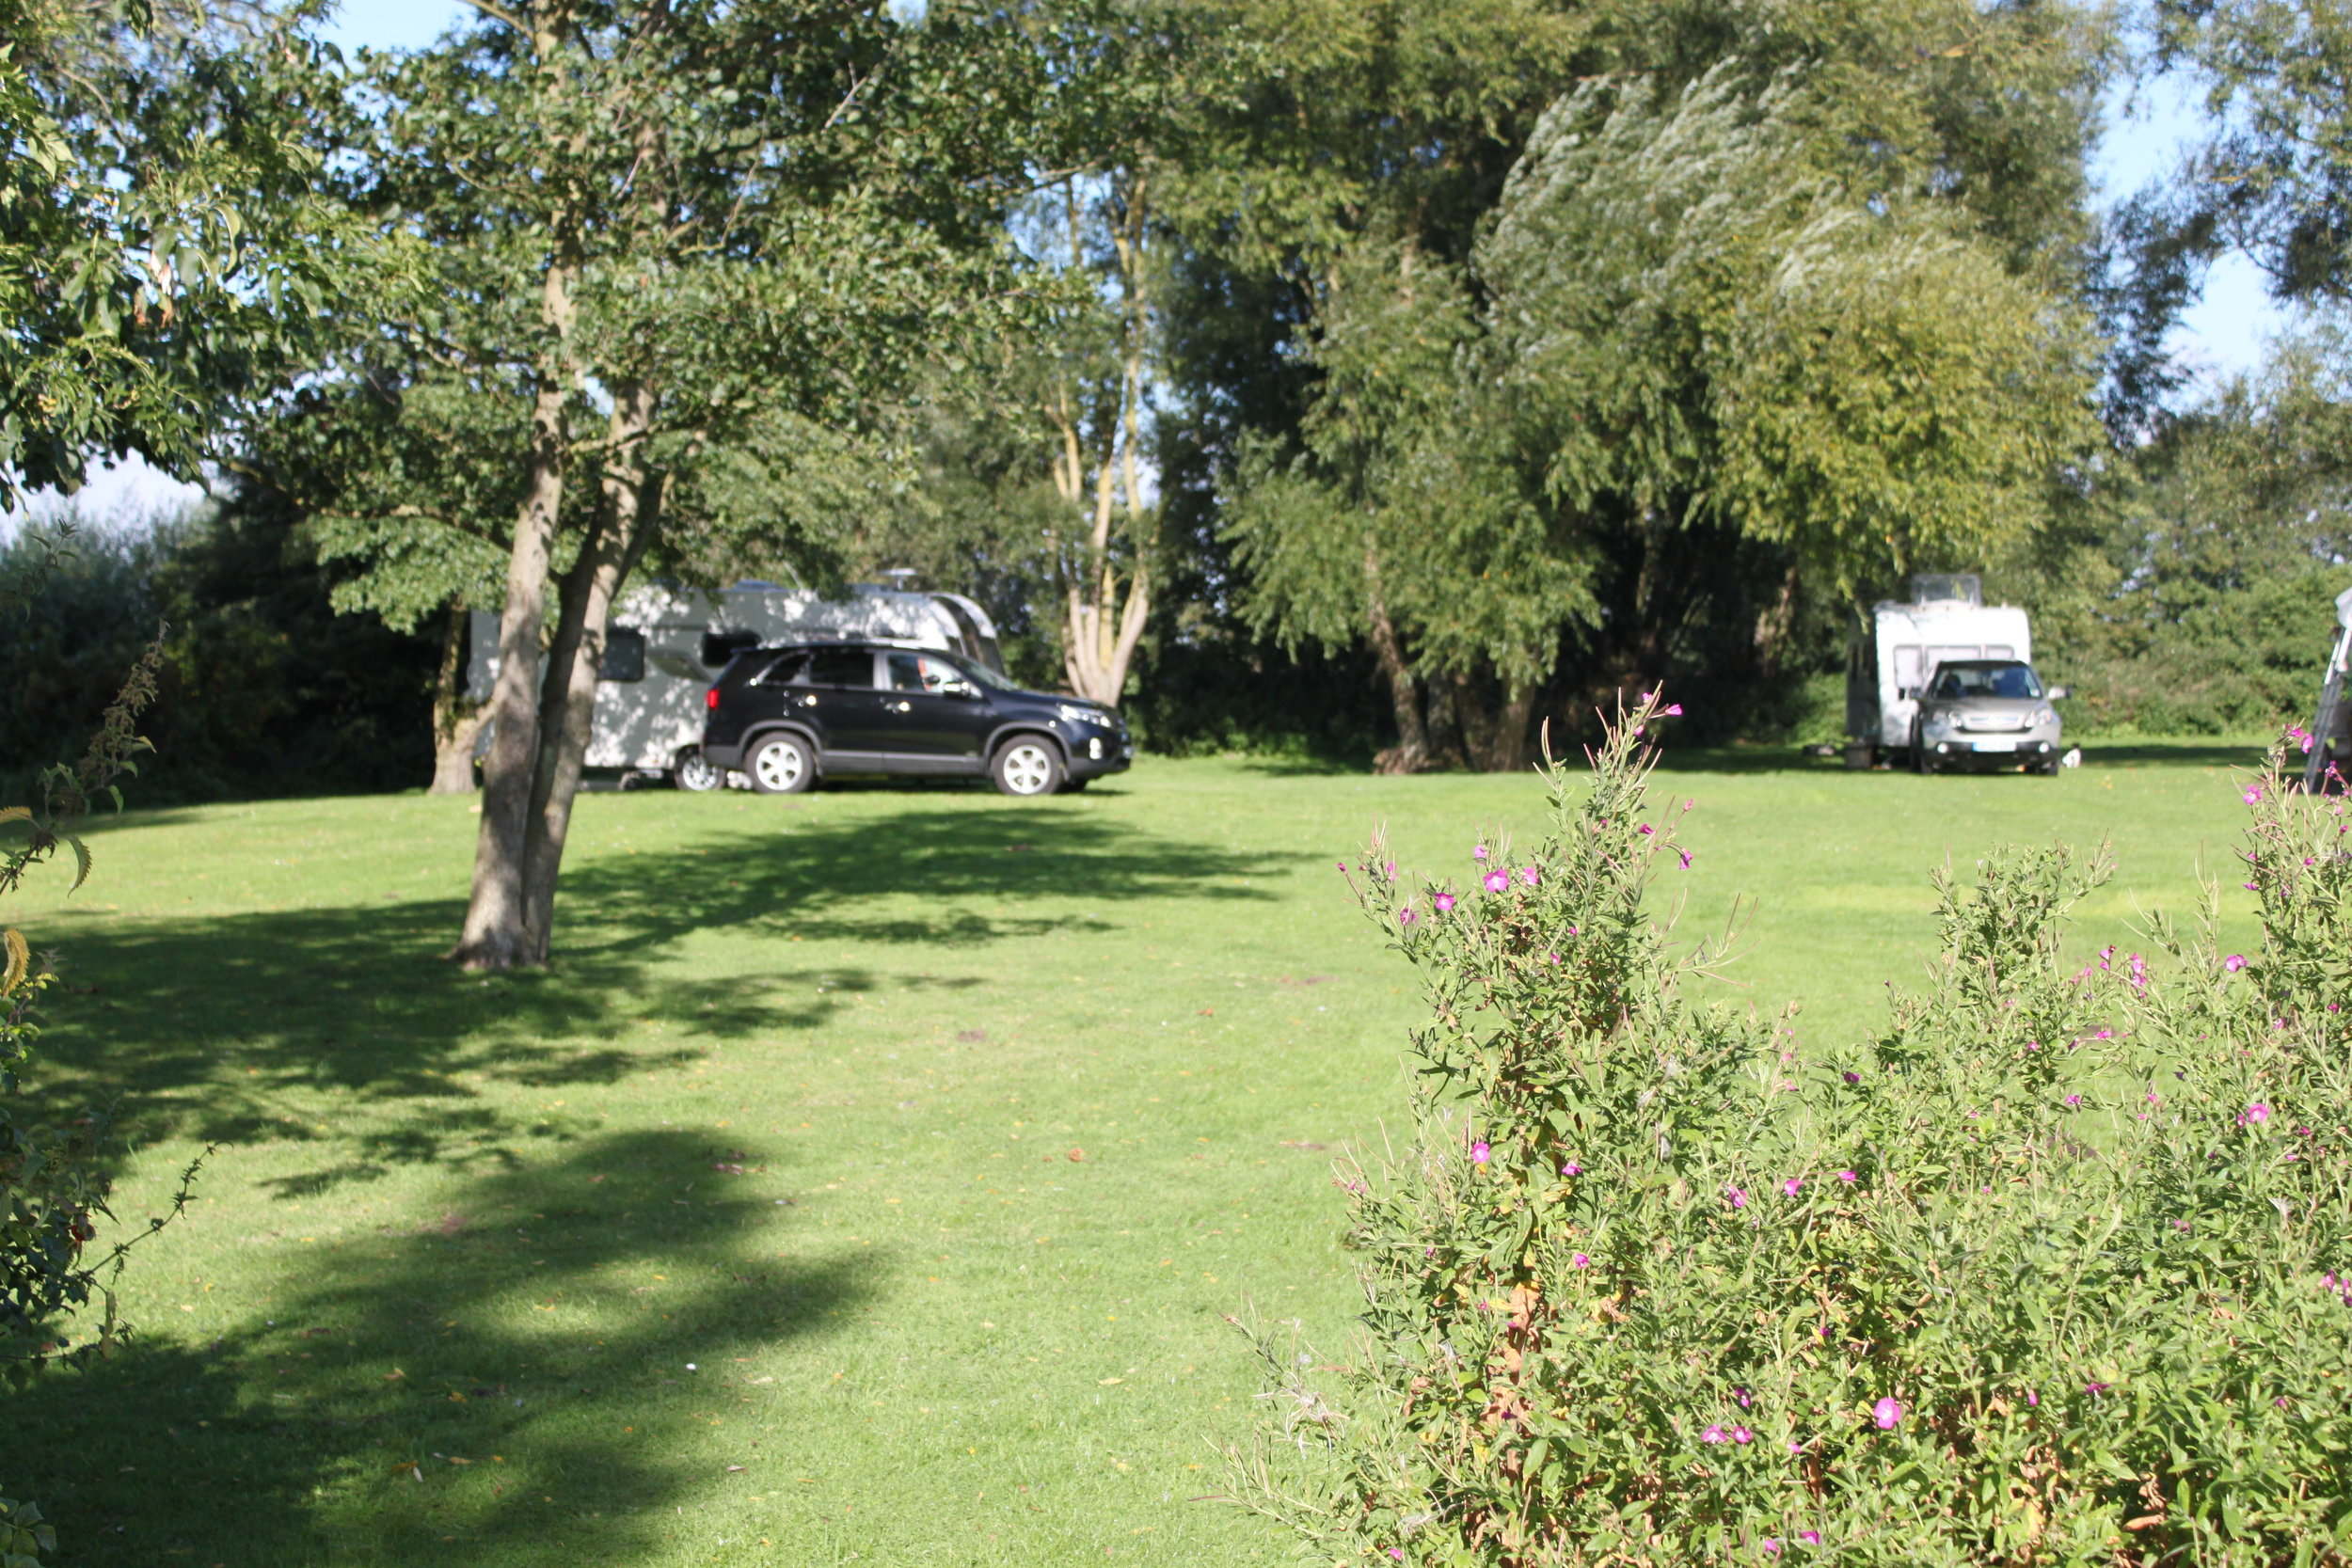 - We are a certified location for the Caravan Club & Motorhome Club. Five spaces are available for caravans and motorhomes, being next to the lovely town of Beccles its very popular and we have many people returning each season.Arrival time is any time after midday, and departure time is before midday on the day of departure.We have electric hook up, drinking water, ladies and gents toilets and toilet waste disposal. Free WiFi is available on site.Dogs are welcome, but must be on a lead at all times and any mess cleared up.The cost is £15 per night